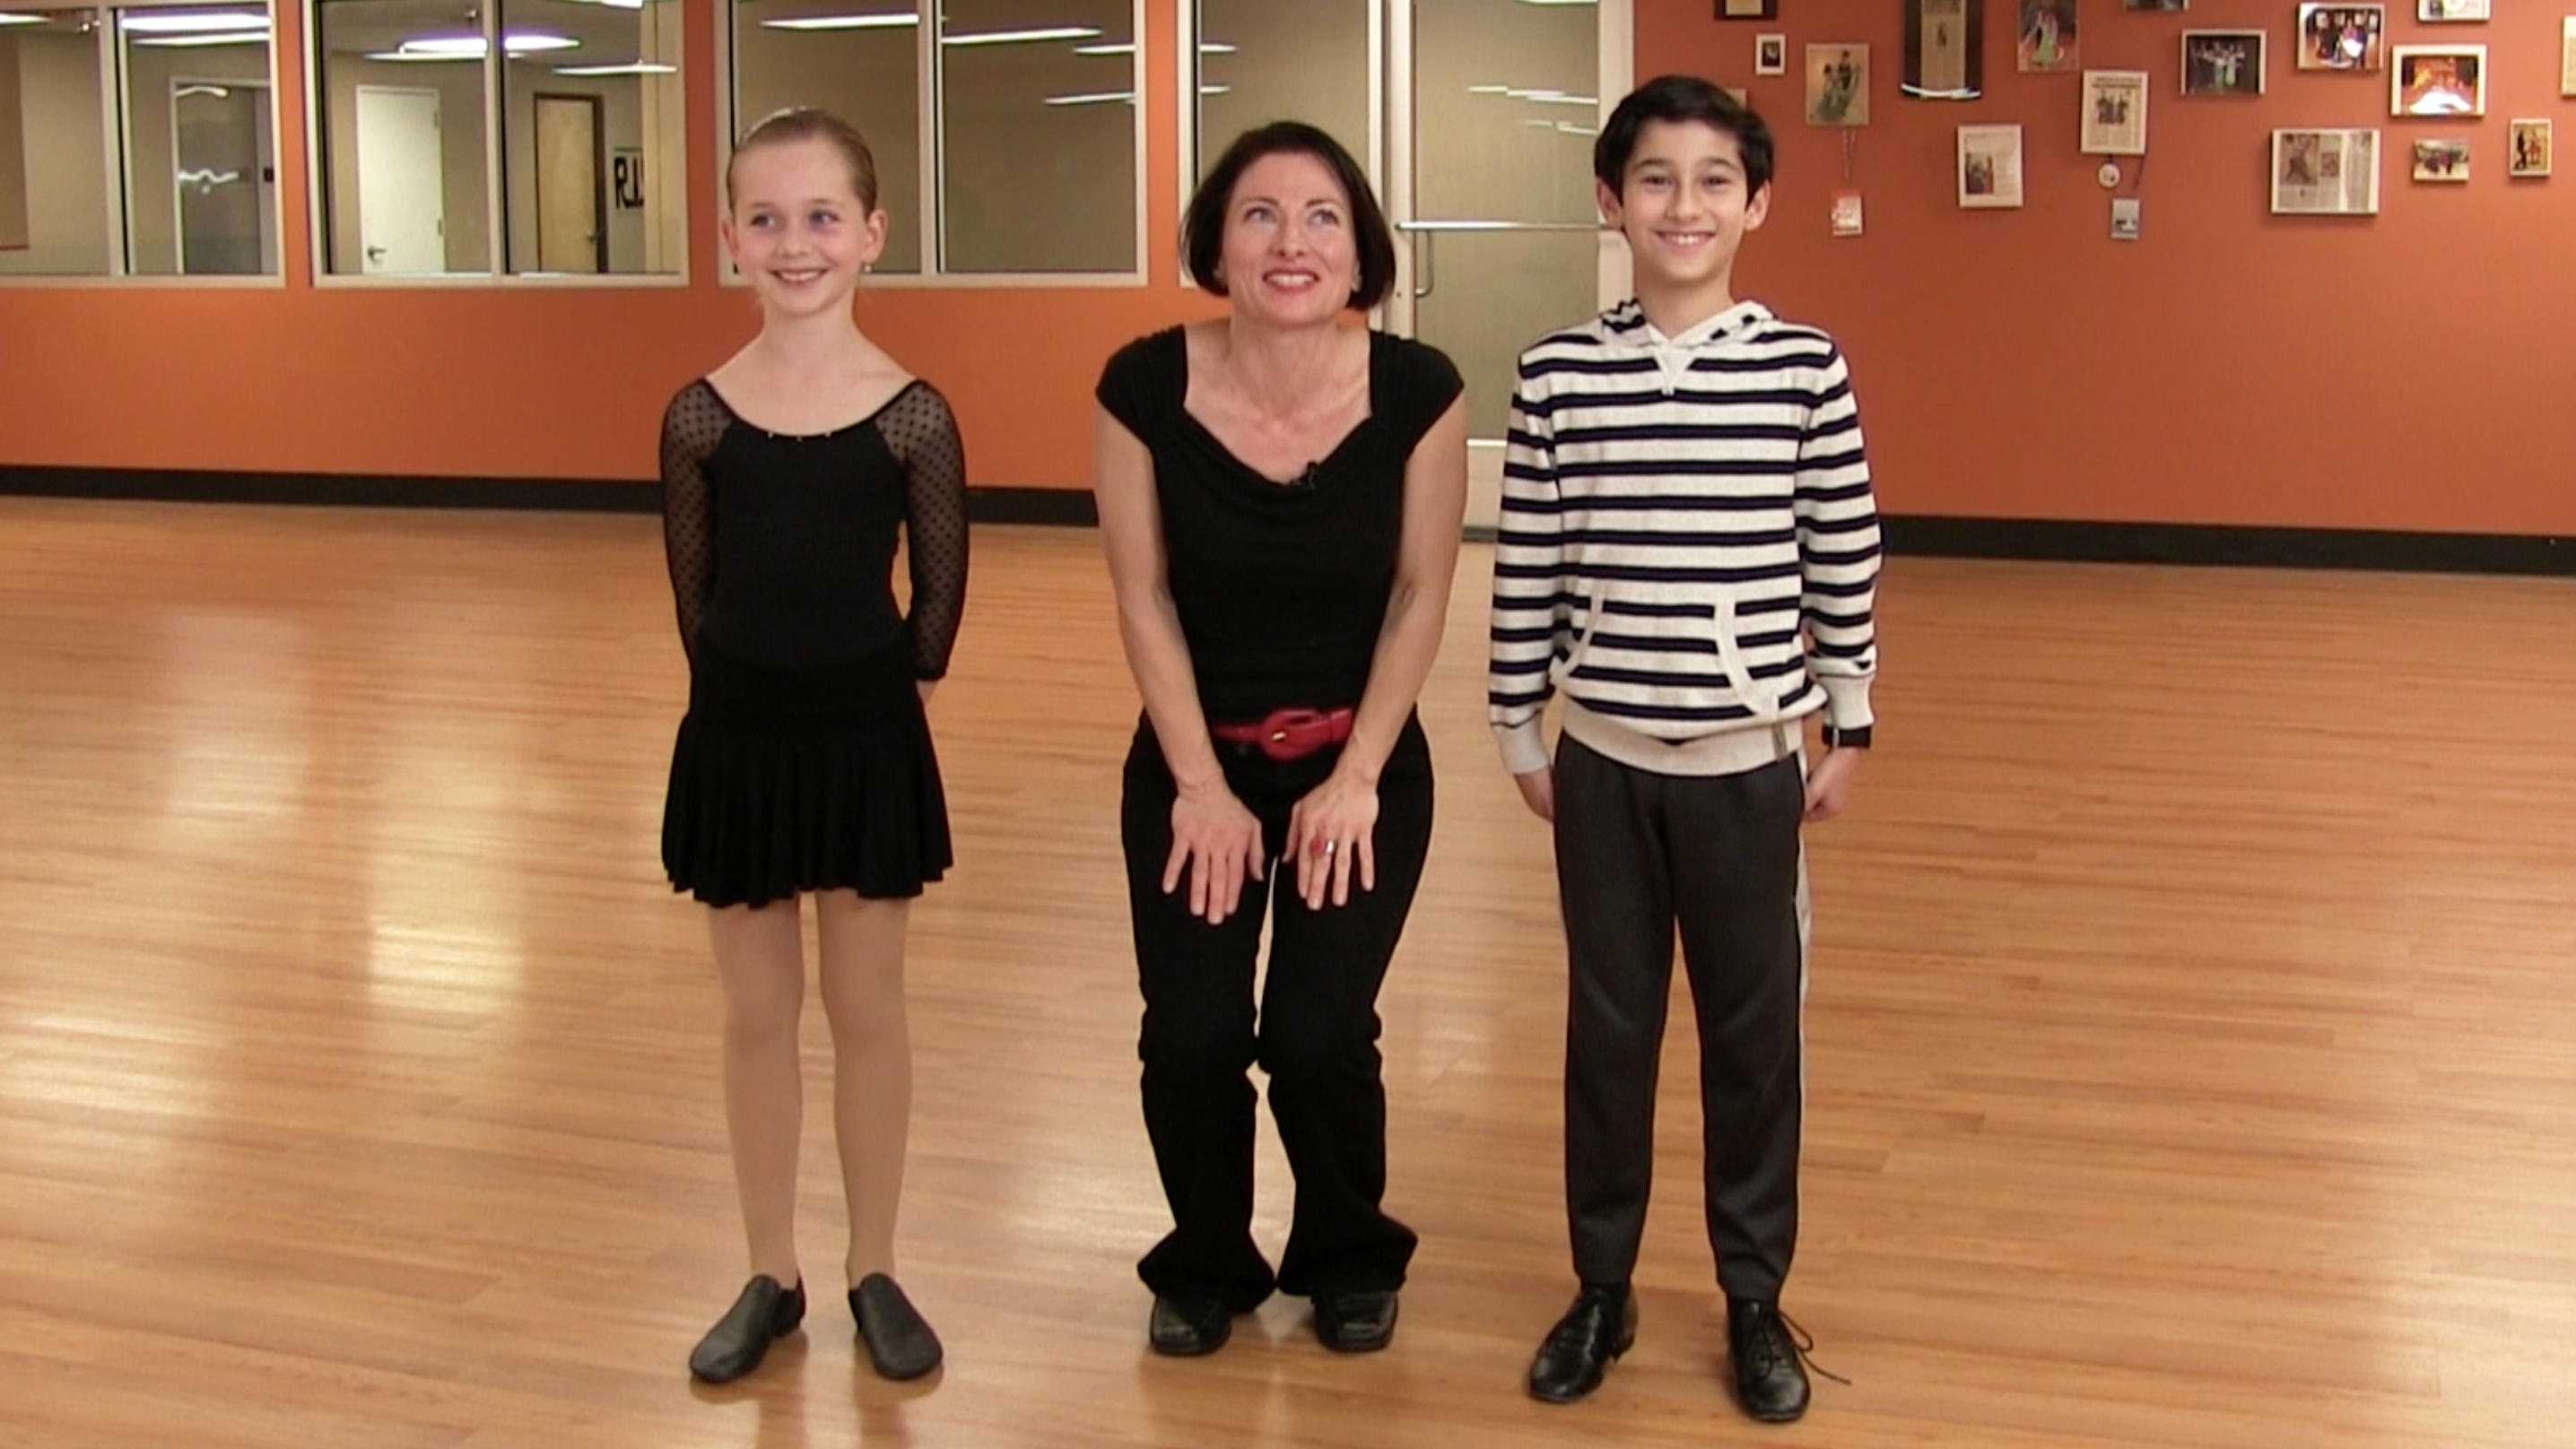 Sew your own youth Latin dance costumes